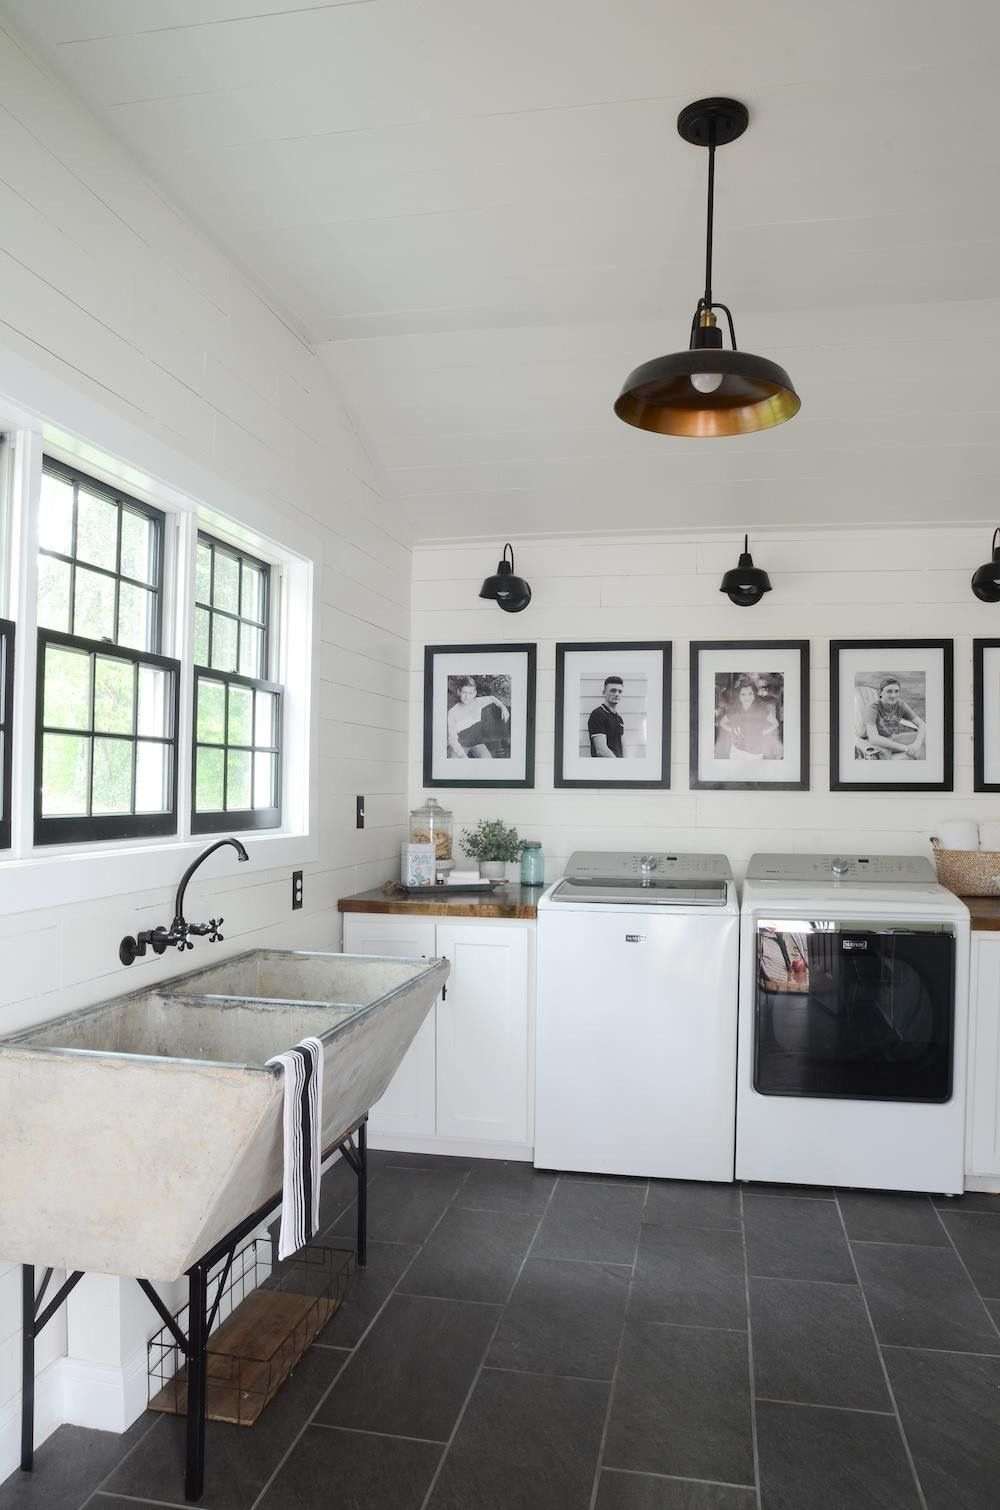 laundry room, to wash and fold your clothes, basement diy